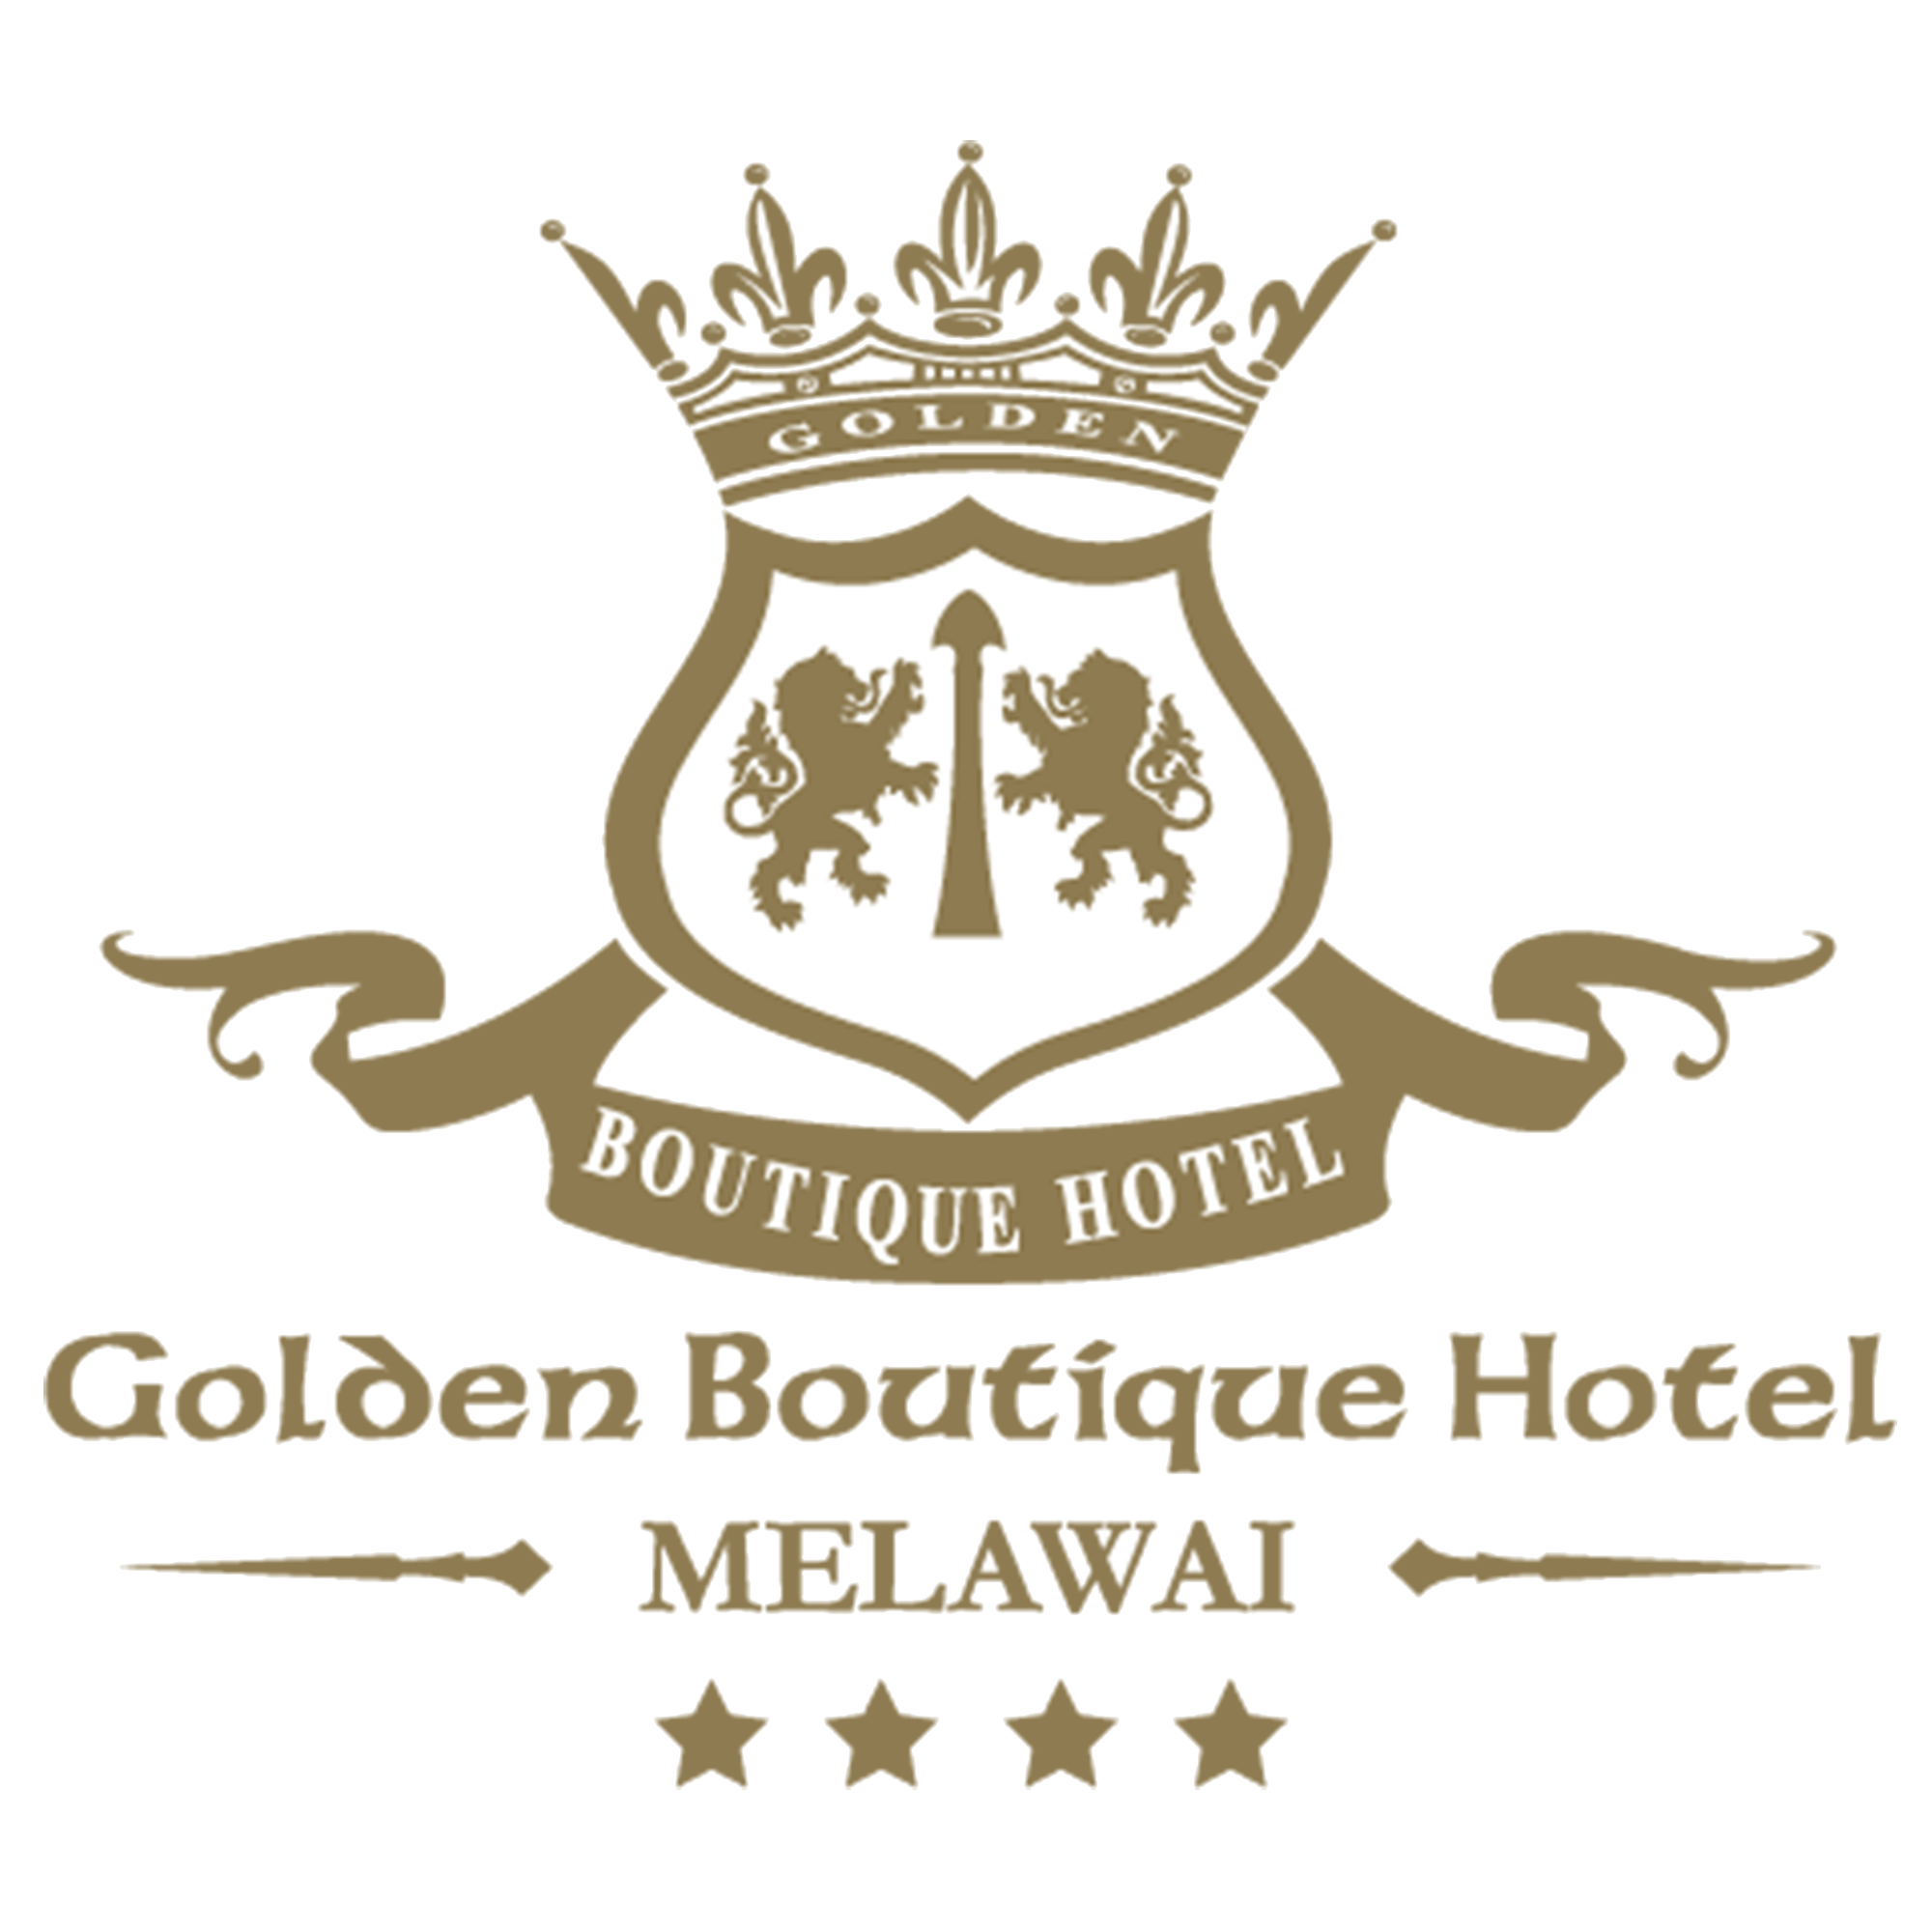 Golden boutique hotel melawai for Boutique hotel logo